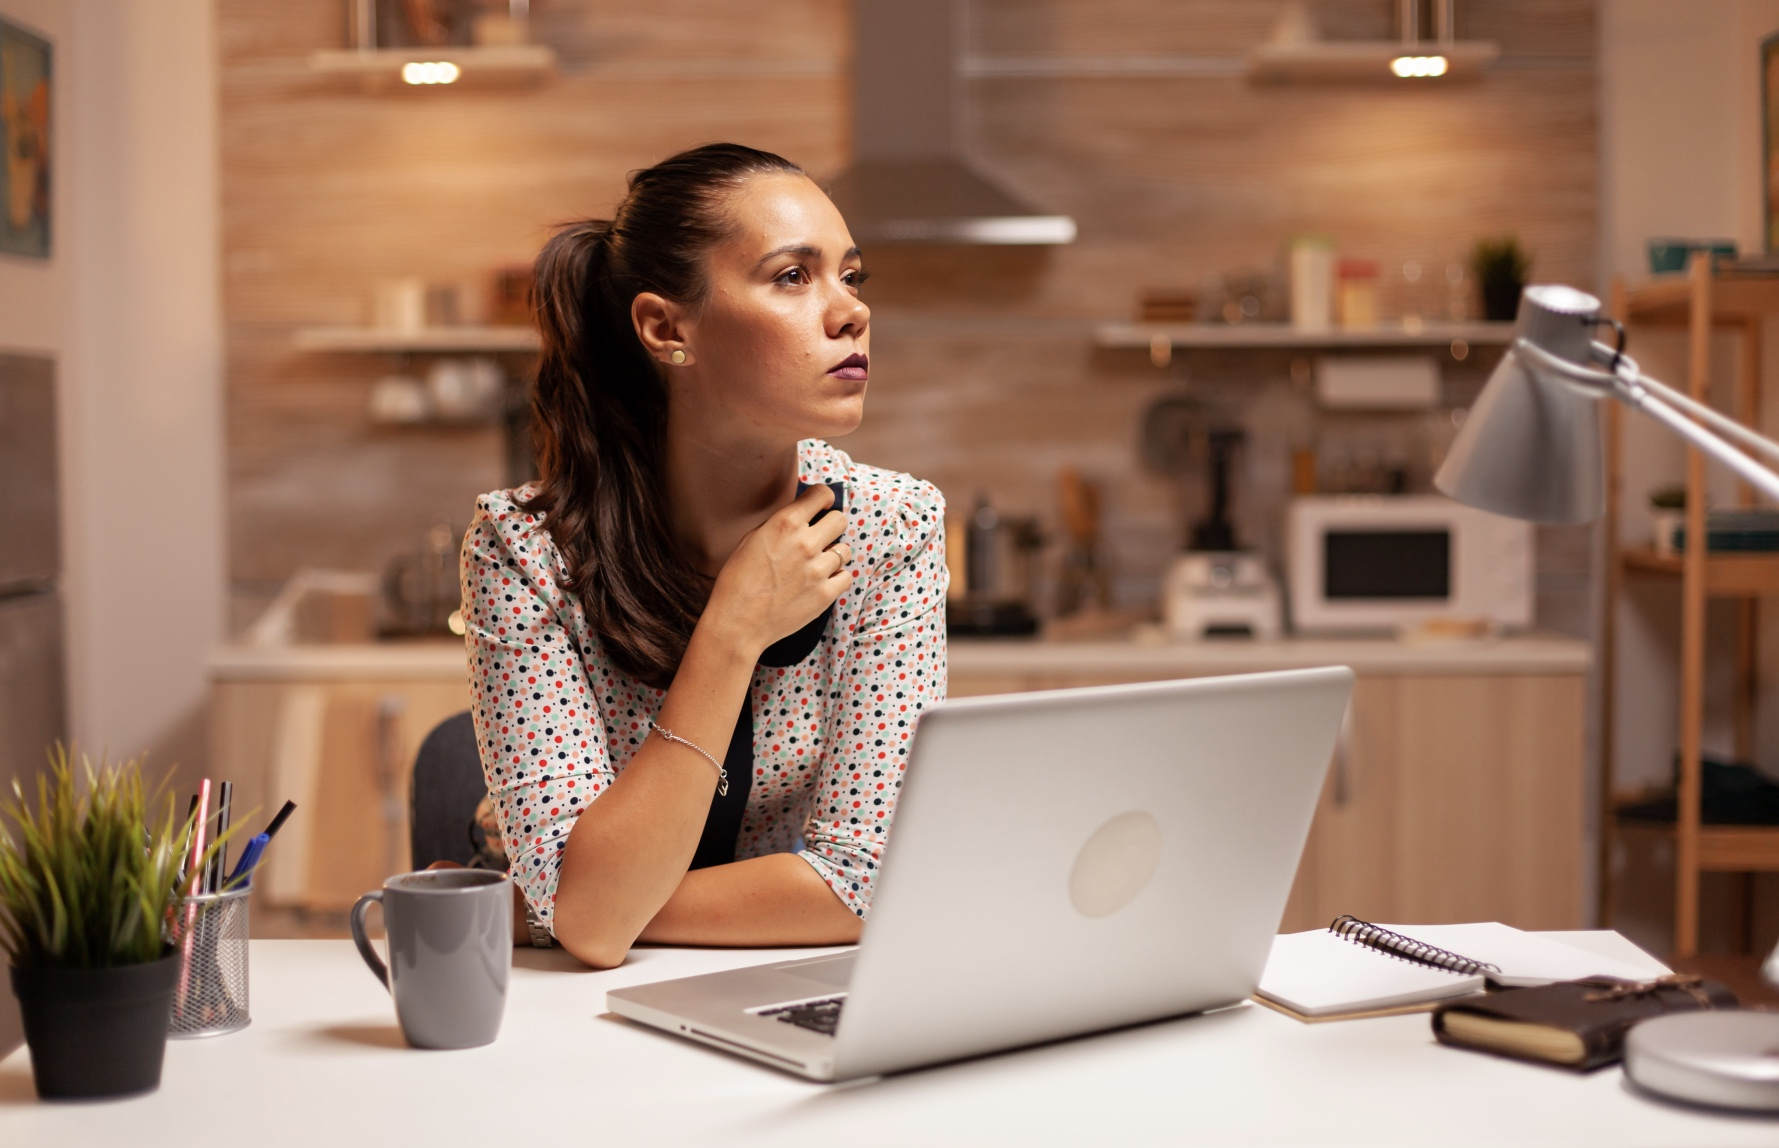 Woman thinking about moving forward with the work life coach